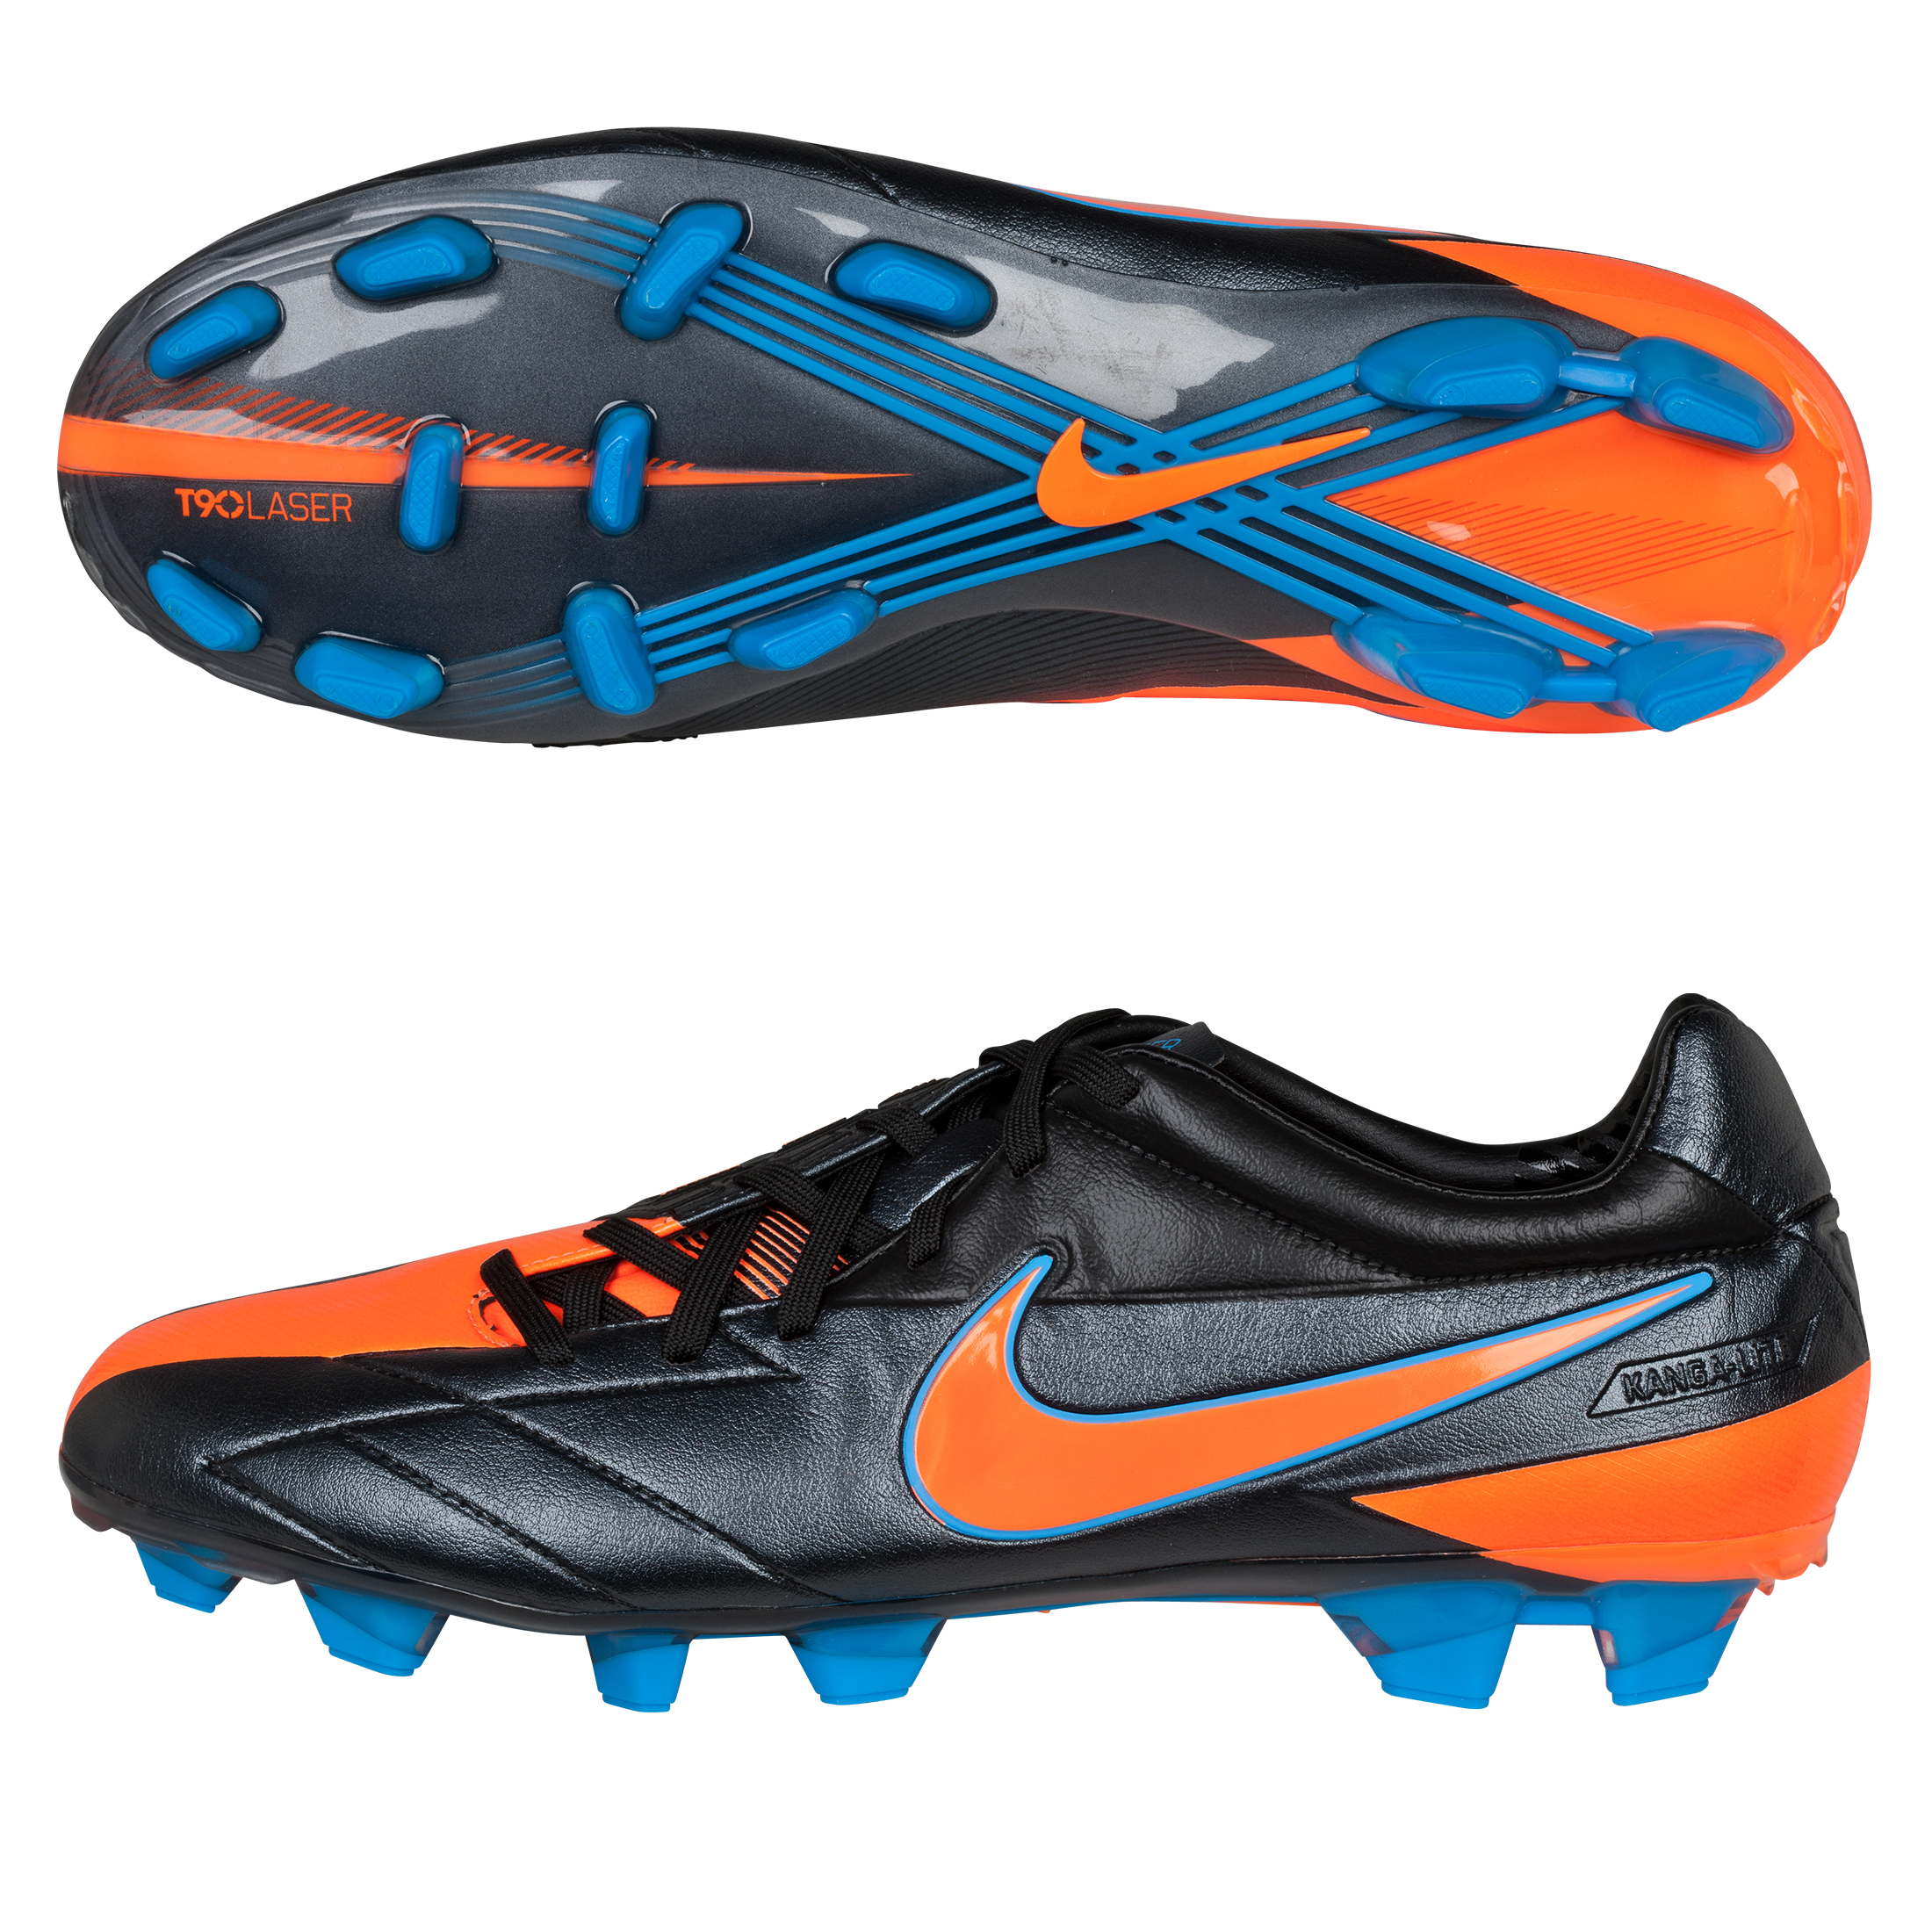 Nike Total90 Laser IV KL Firm Ground Football Boots - Black/Total Orange/Blue Glow